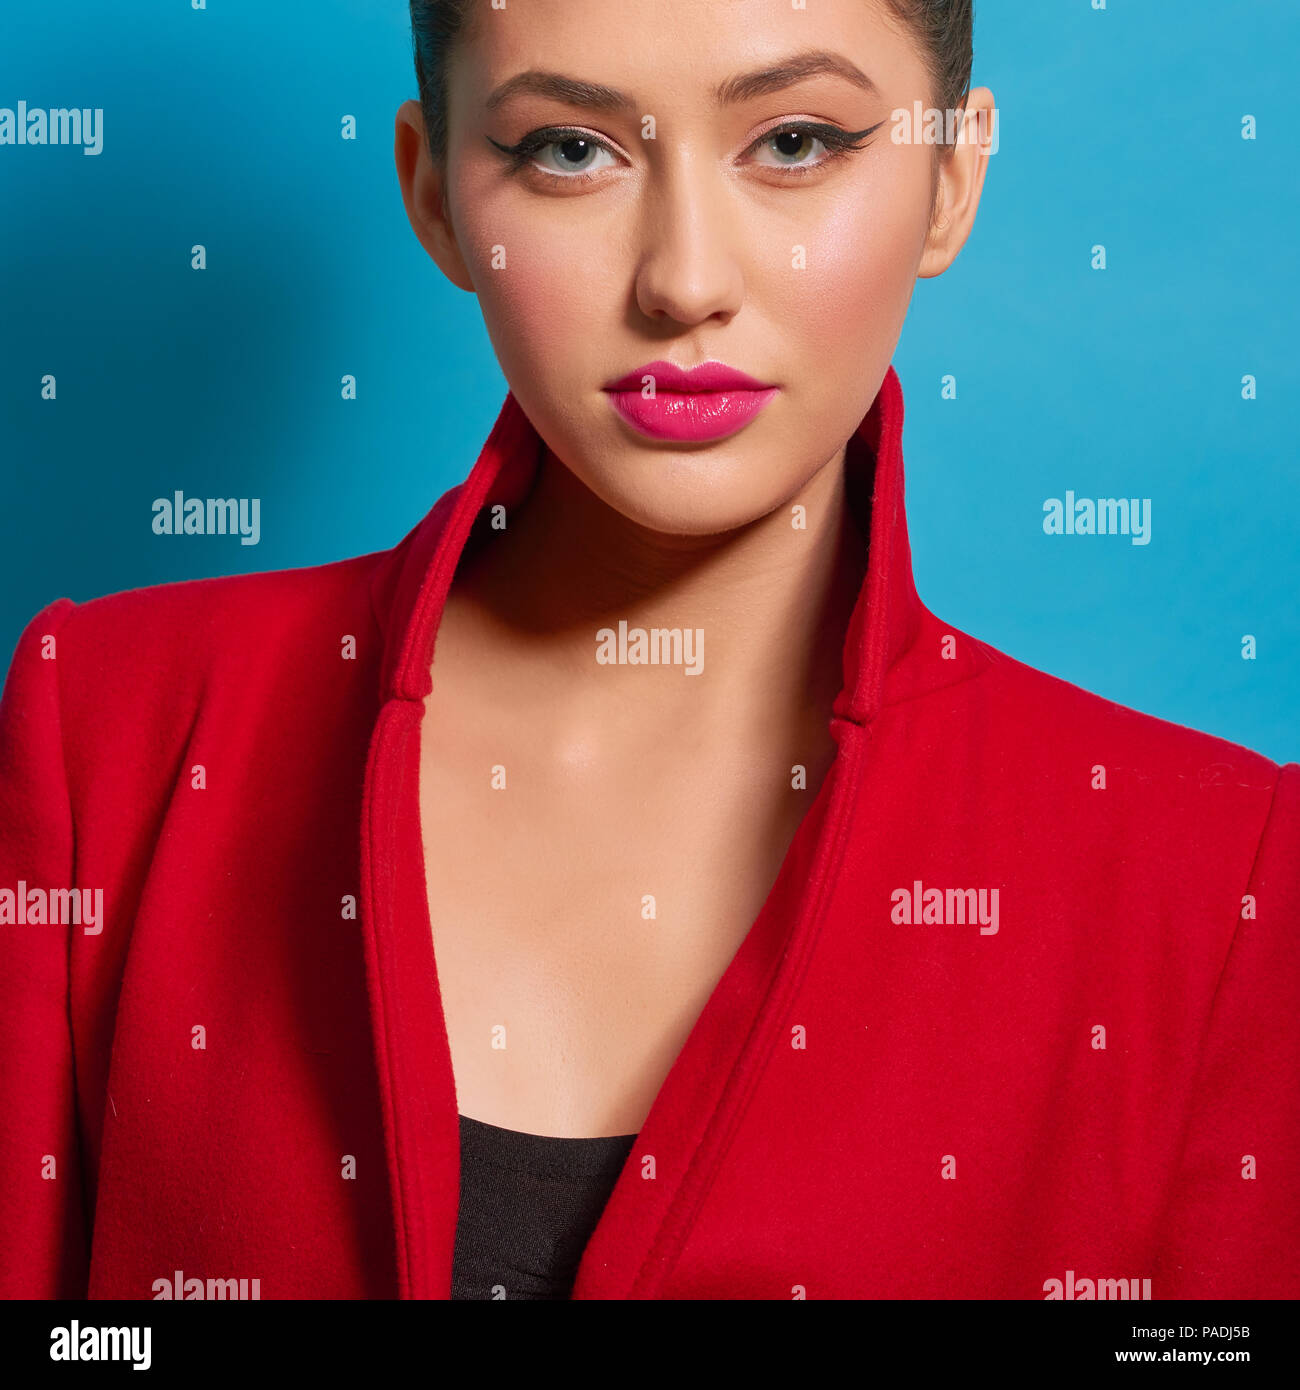 Contrast portrait of beatiful girl wearing red coat bright make up. Pink plump lips, pale cheeks, perfect eyebrow shape, big eyes, healthy skin color.Looking at camera, feeling confident. - Stock Image